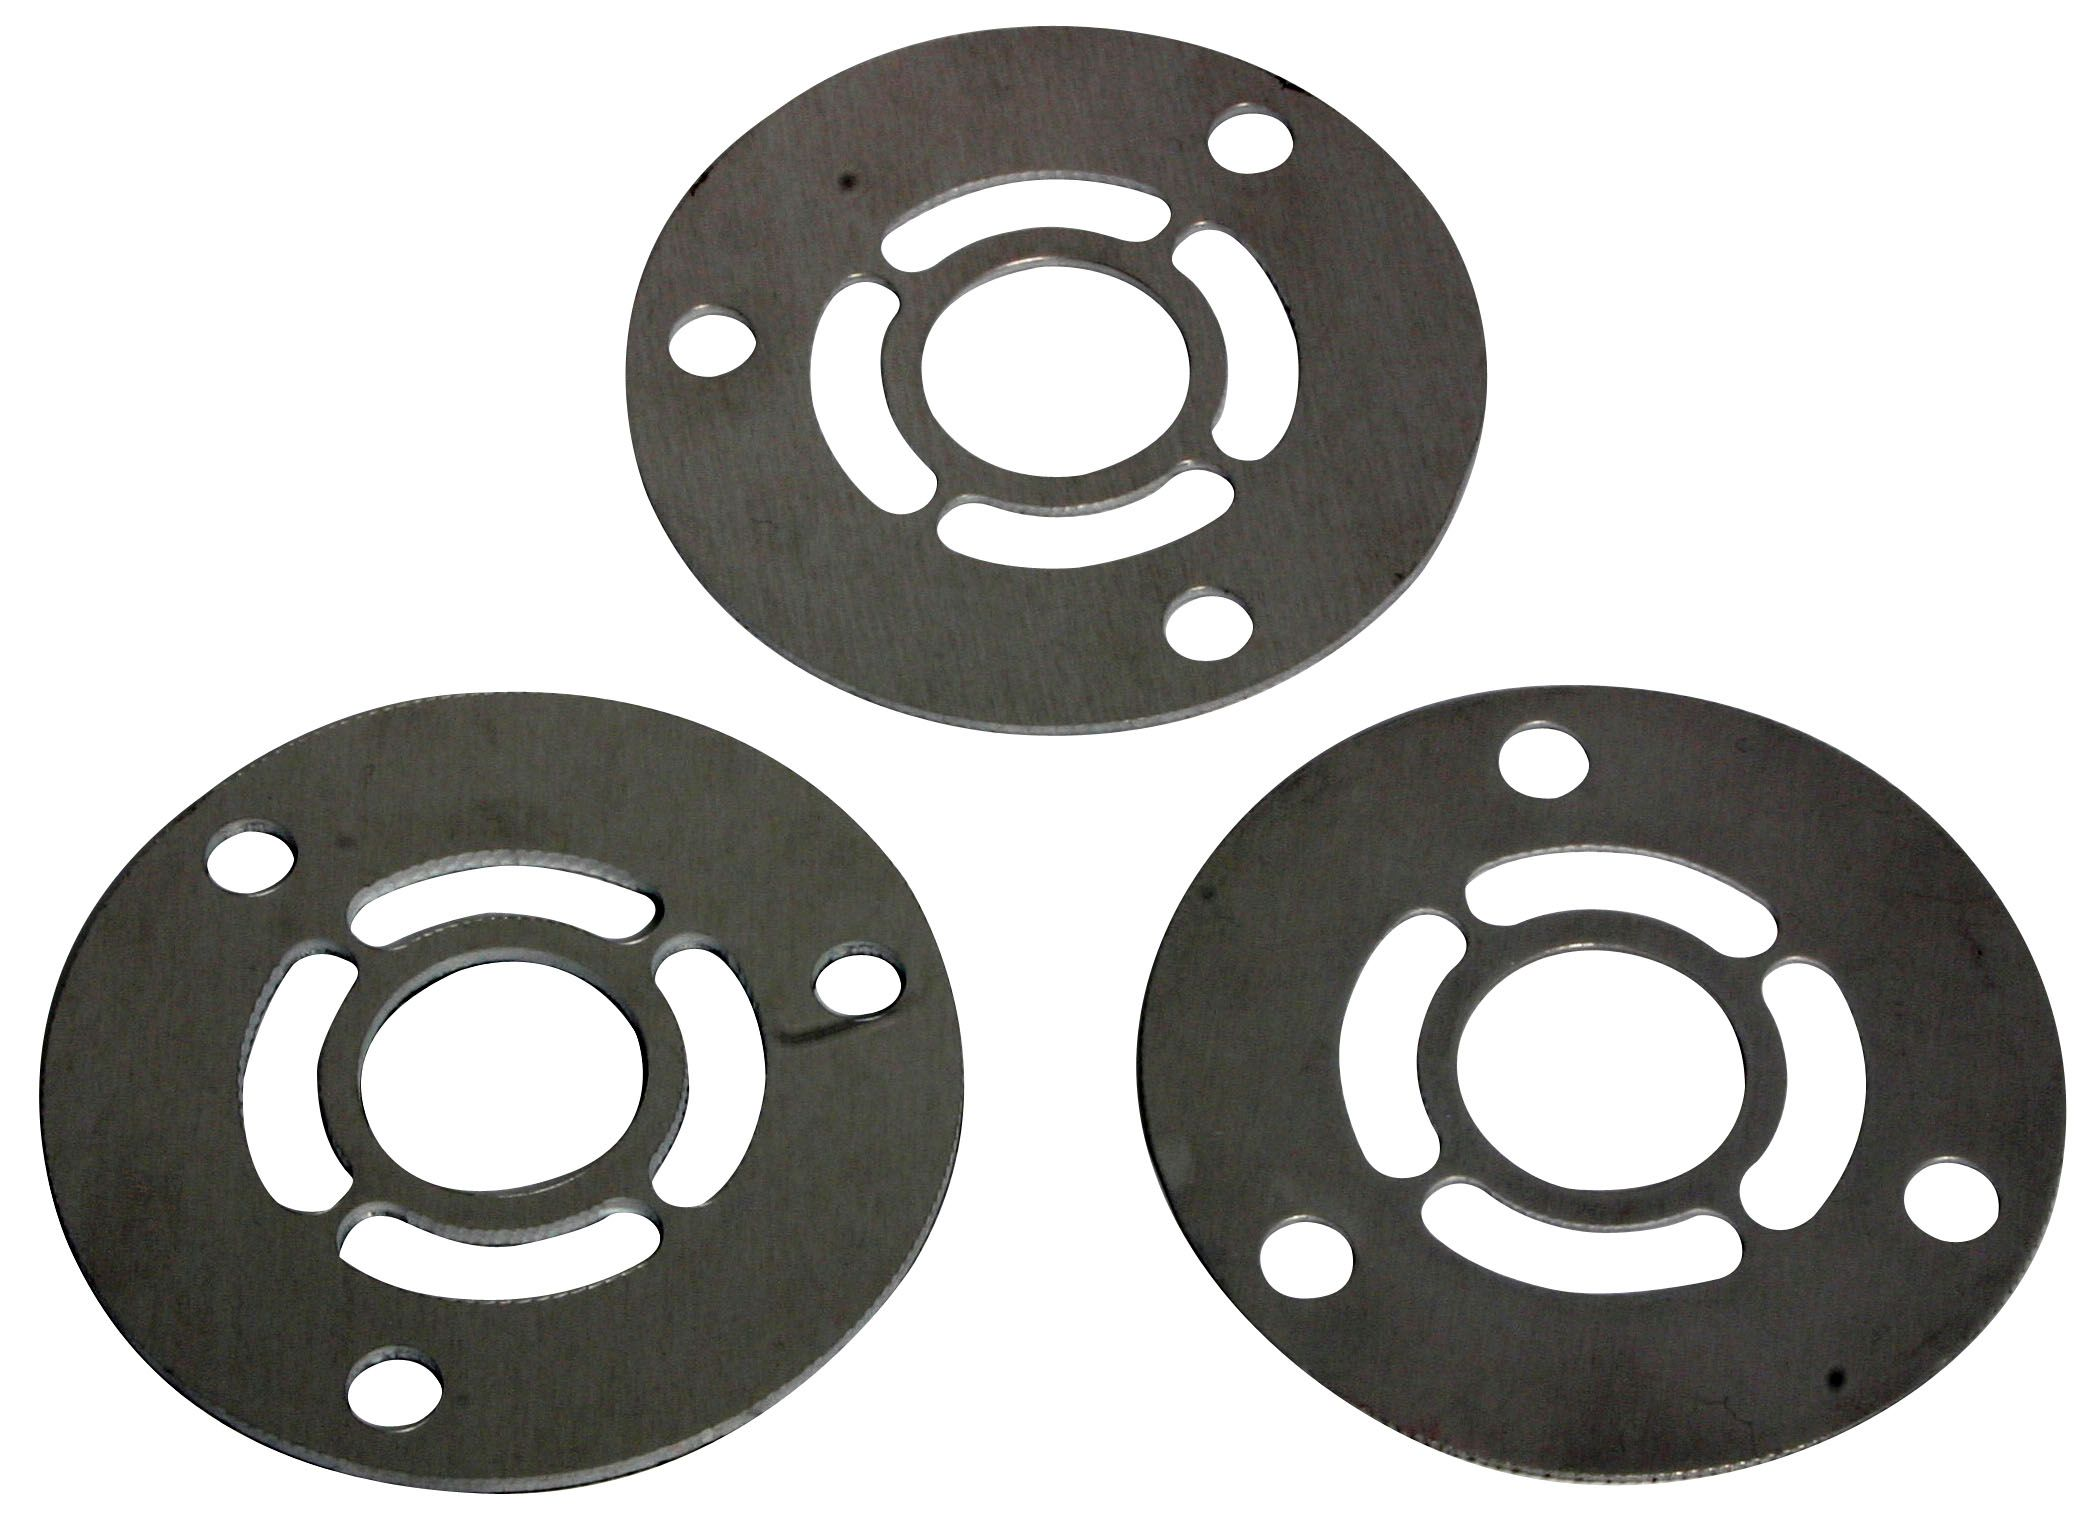 Moroso 64031 Crankshaft Pulley Spacers at ATKHP.com